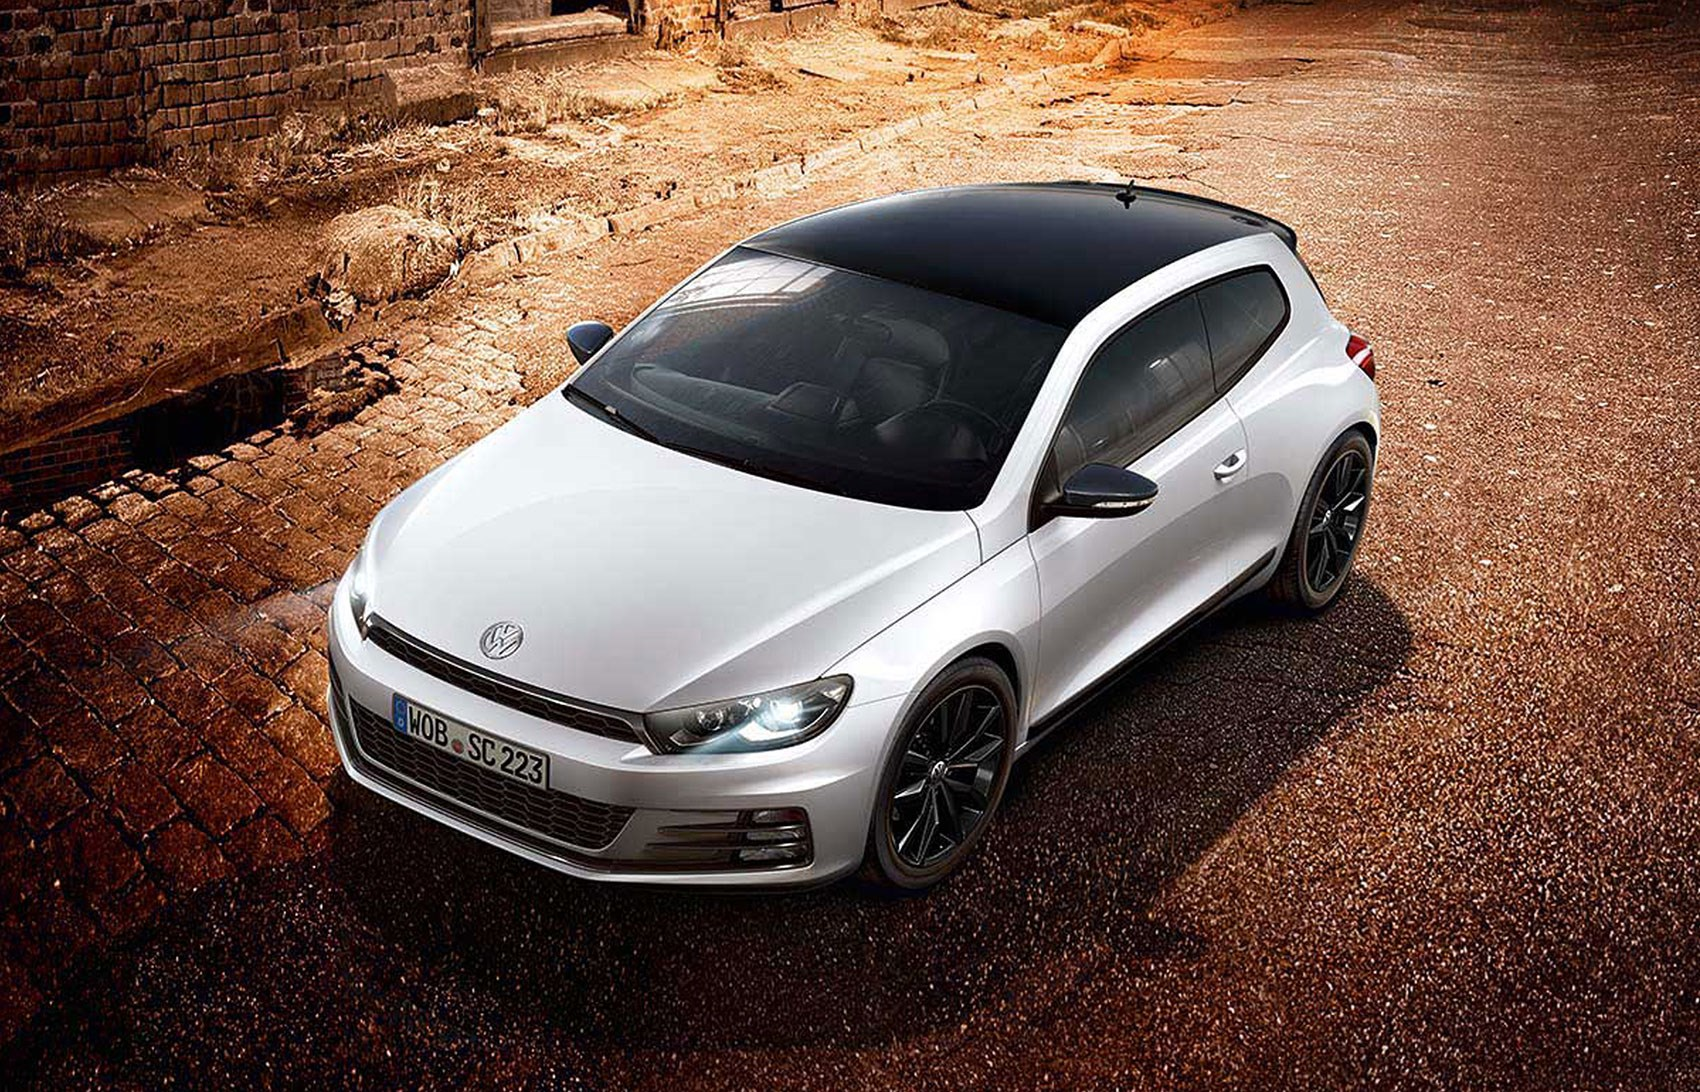 New Volkswagen Scirocco Black Edition variants available to order